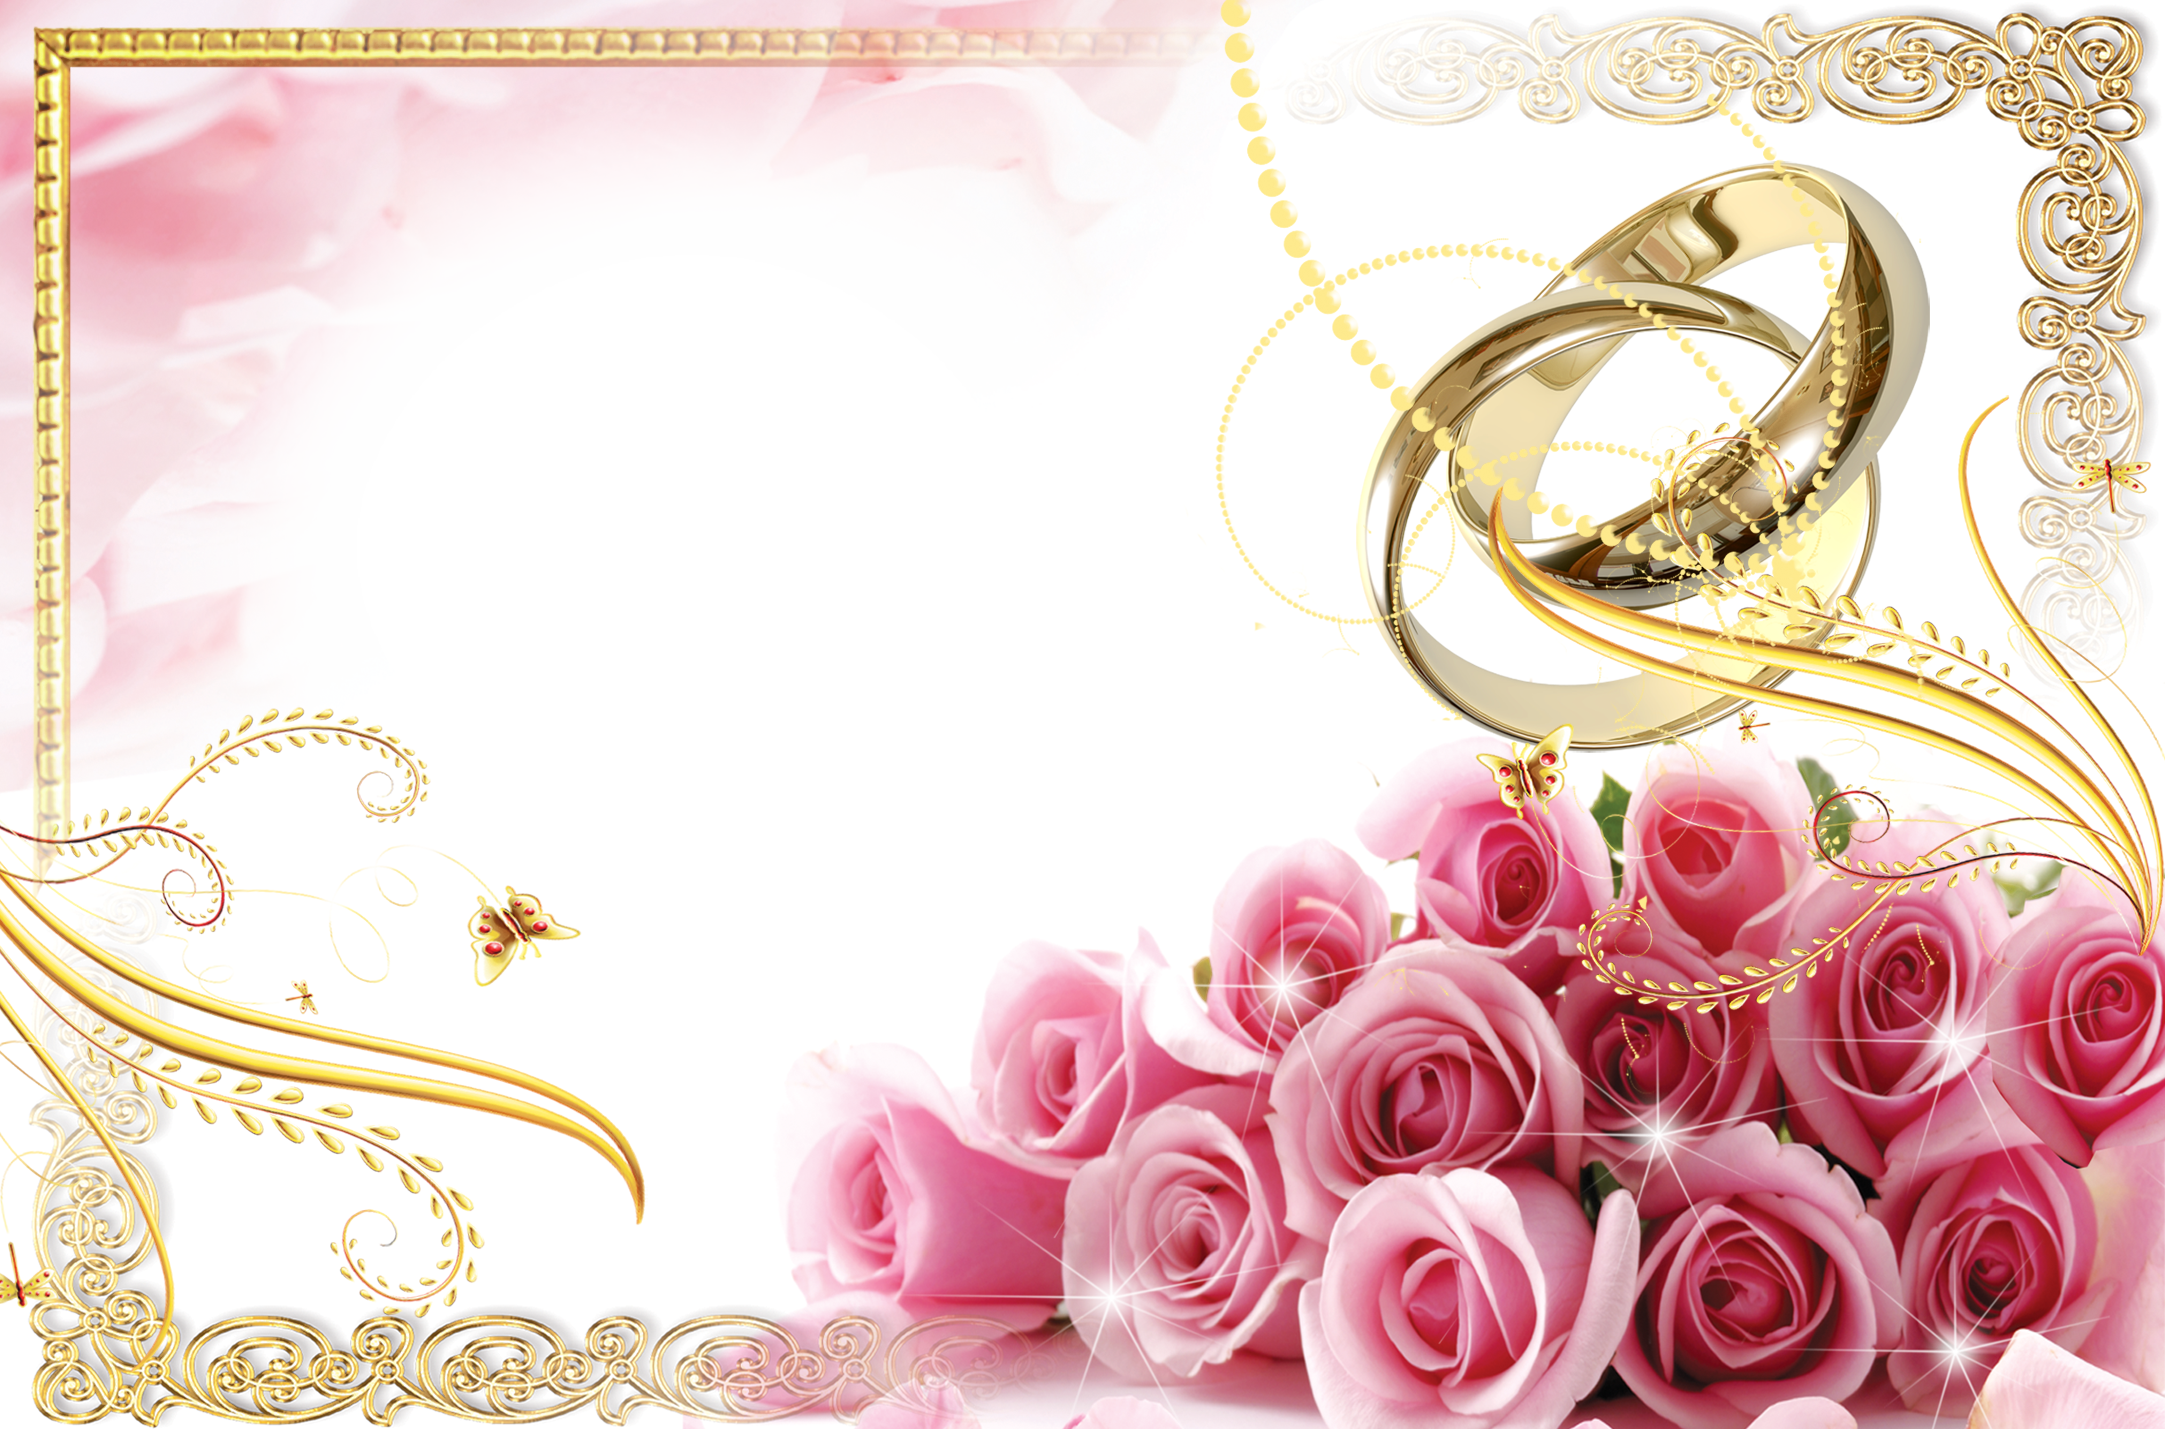 Wedding frames png free download. Transparent frame with rings